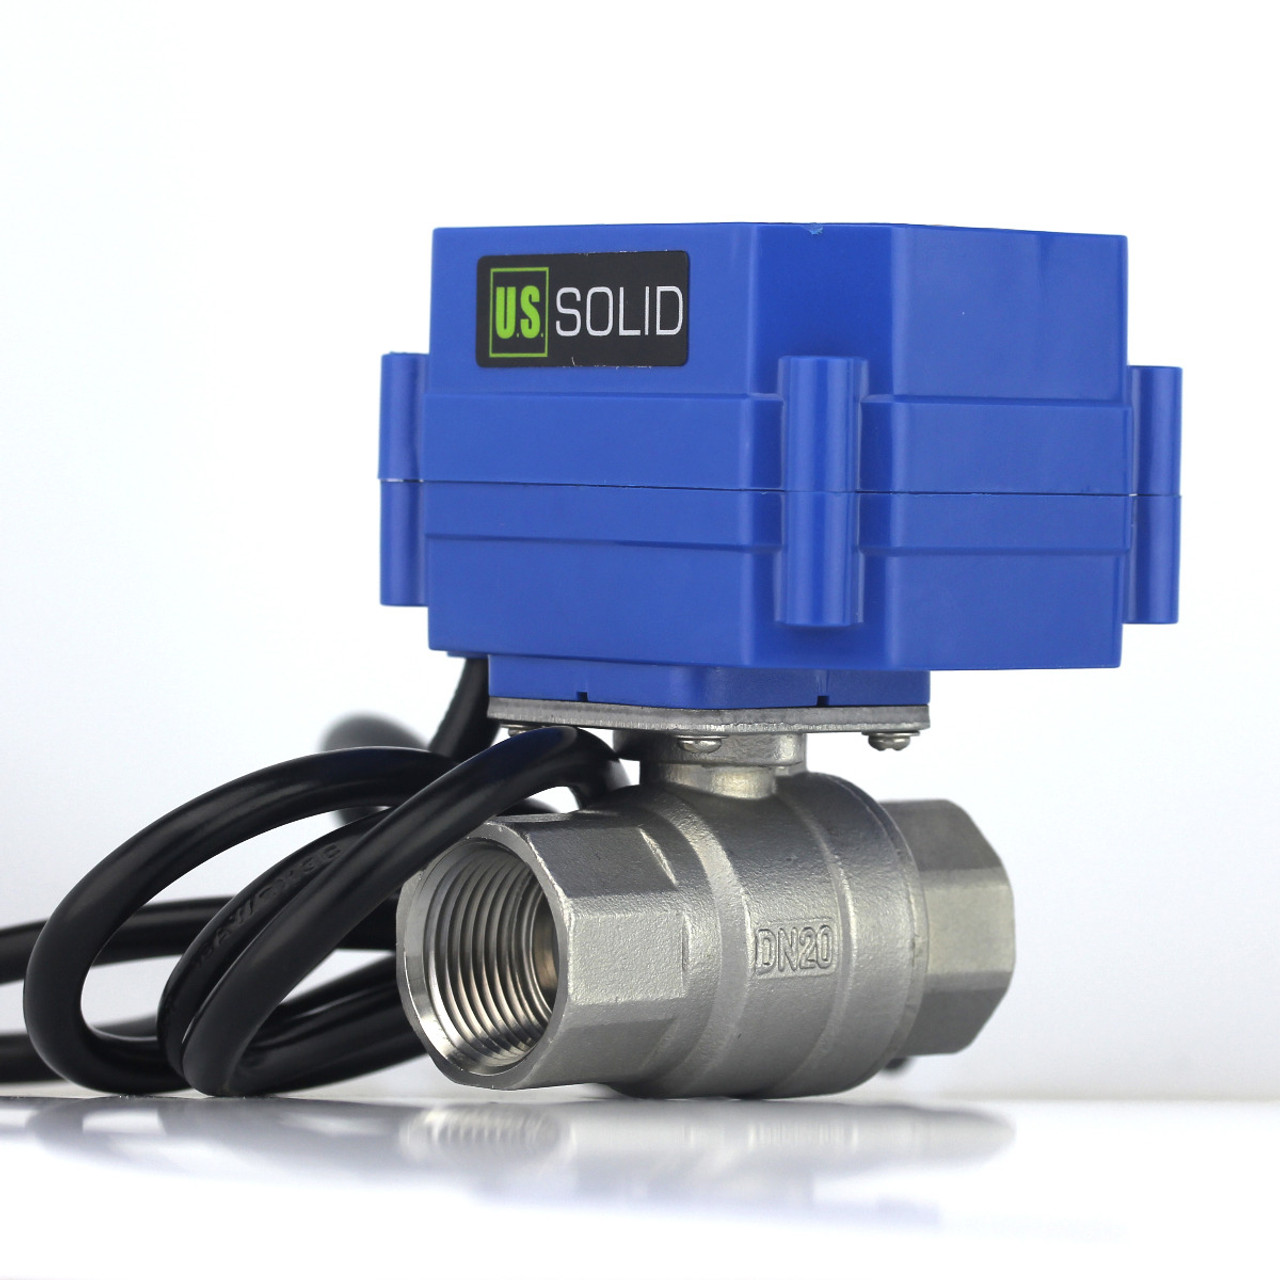 "U.S. Solid Motorized Ball Valve- 1"" Stainless Steel Electrical Ball Valve with Full Port, 110 V AC, 2 Wire Auto Return"